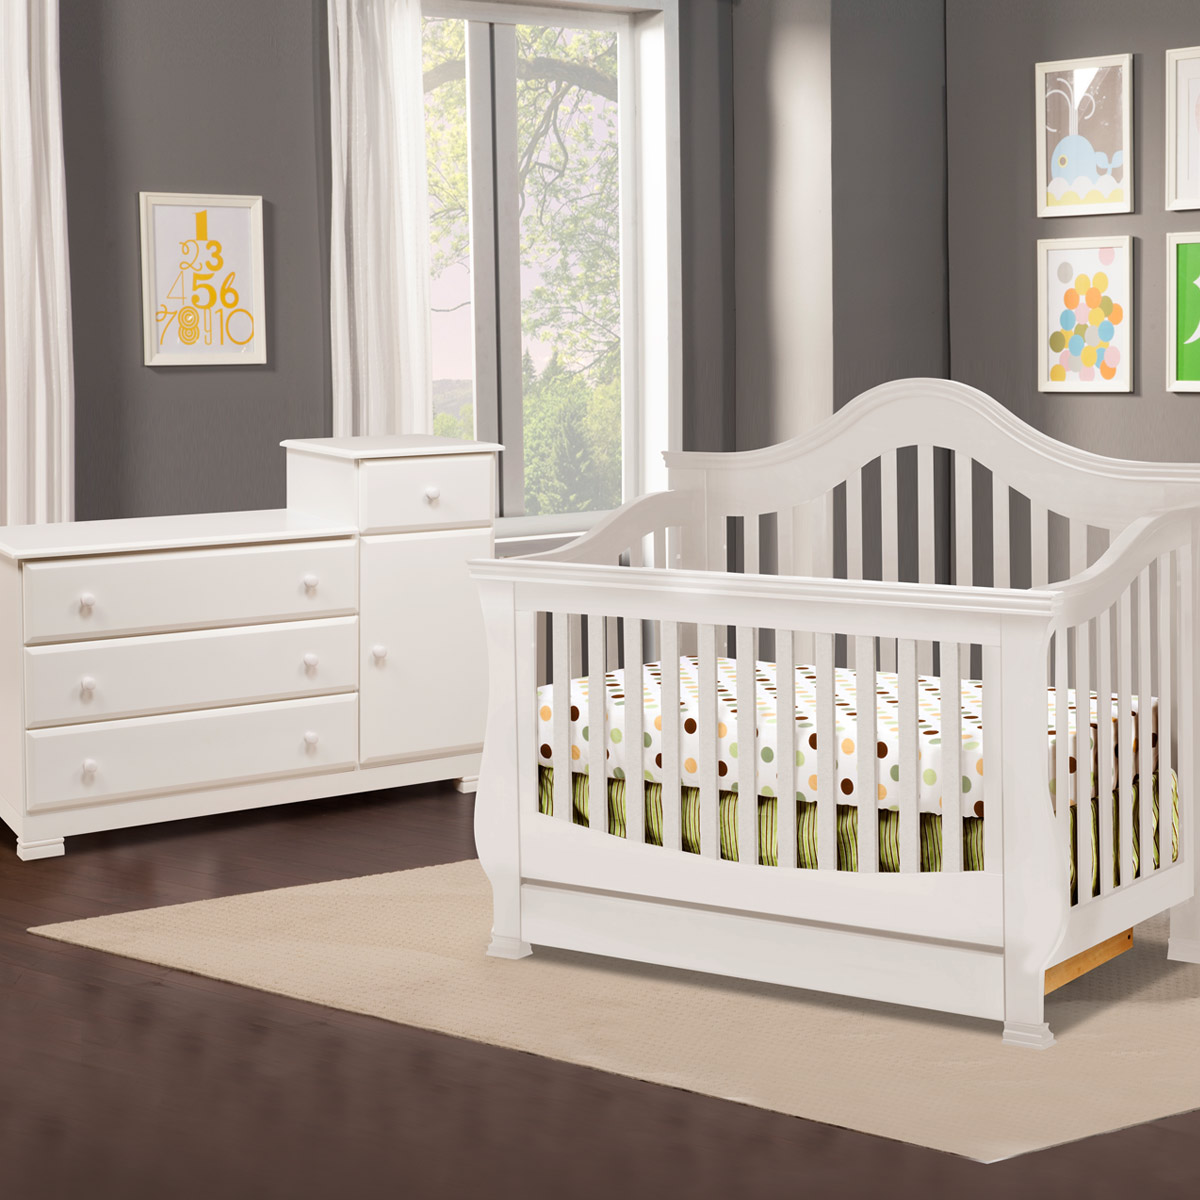 Admirable white baby cribs and area rugs plus laminate flooring simplybabyfurniture